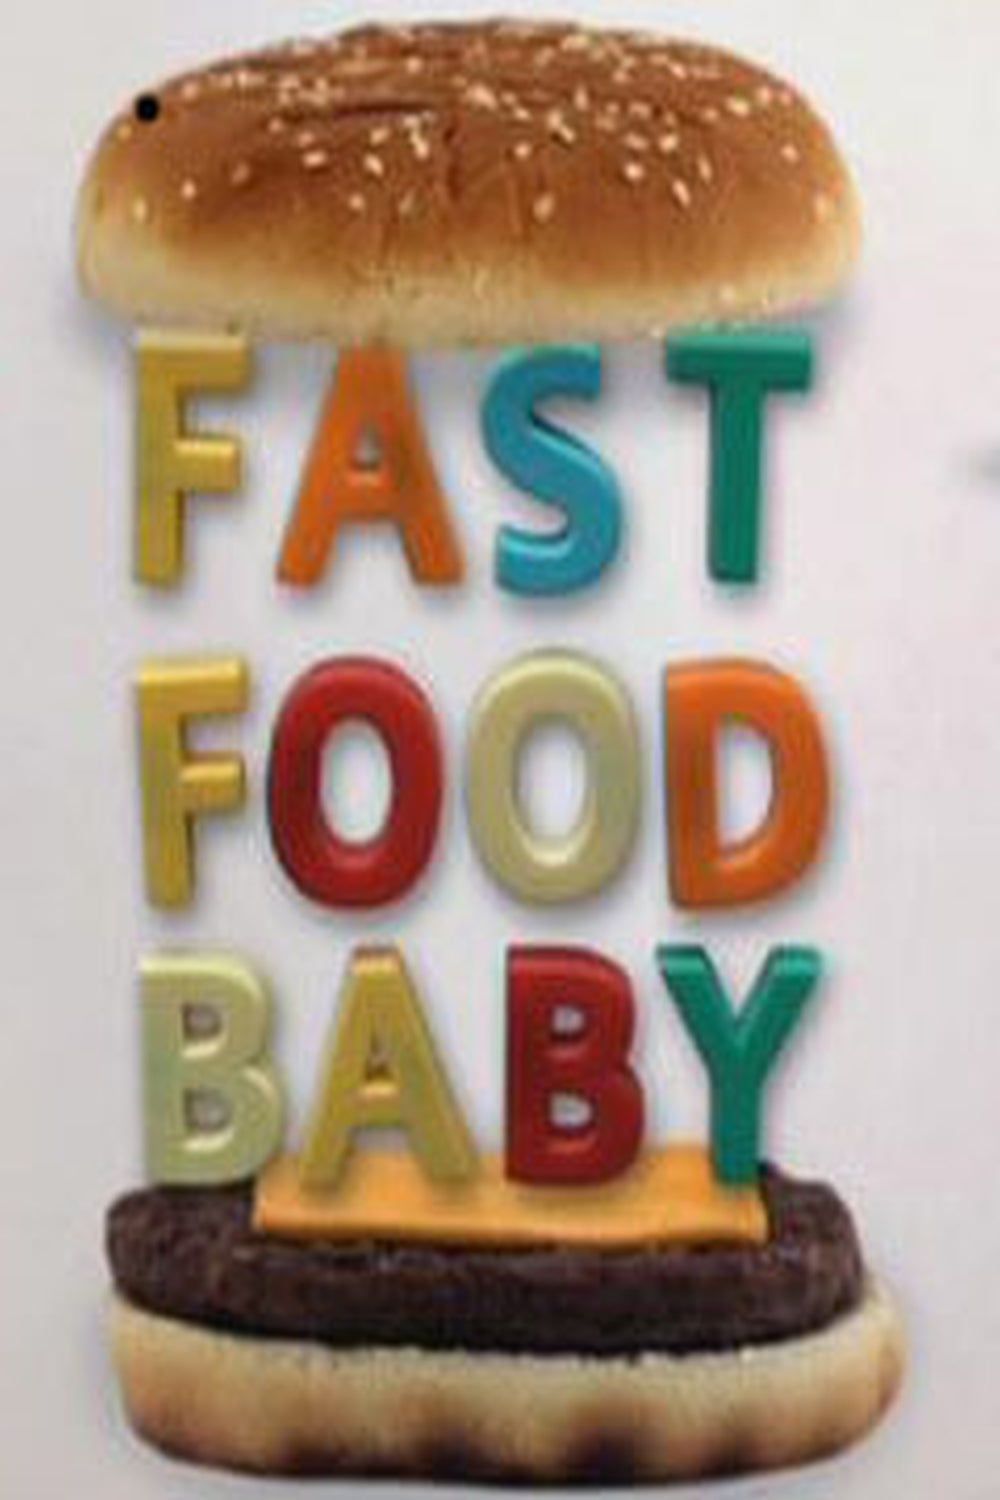 Fast Food Baby 2011